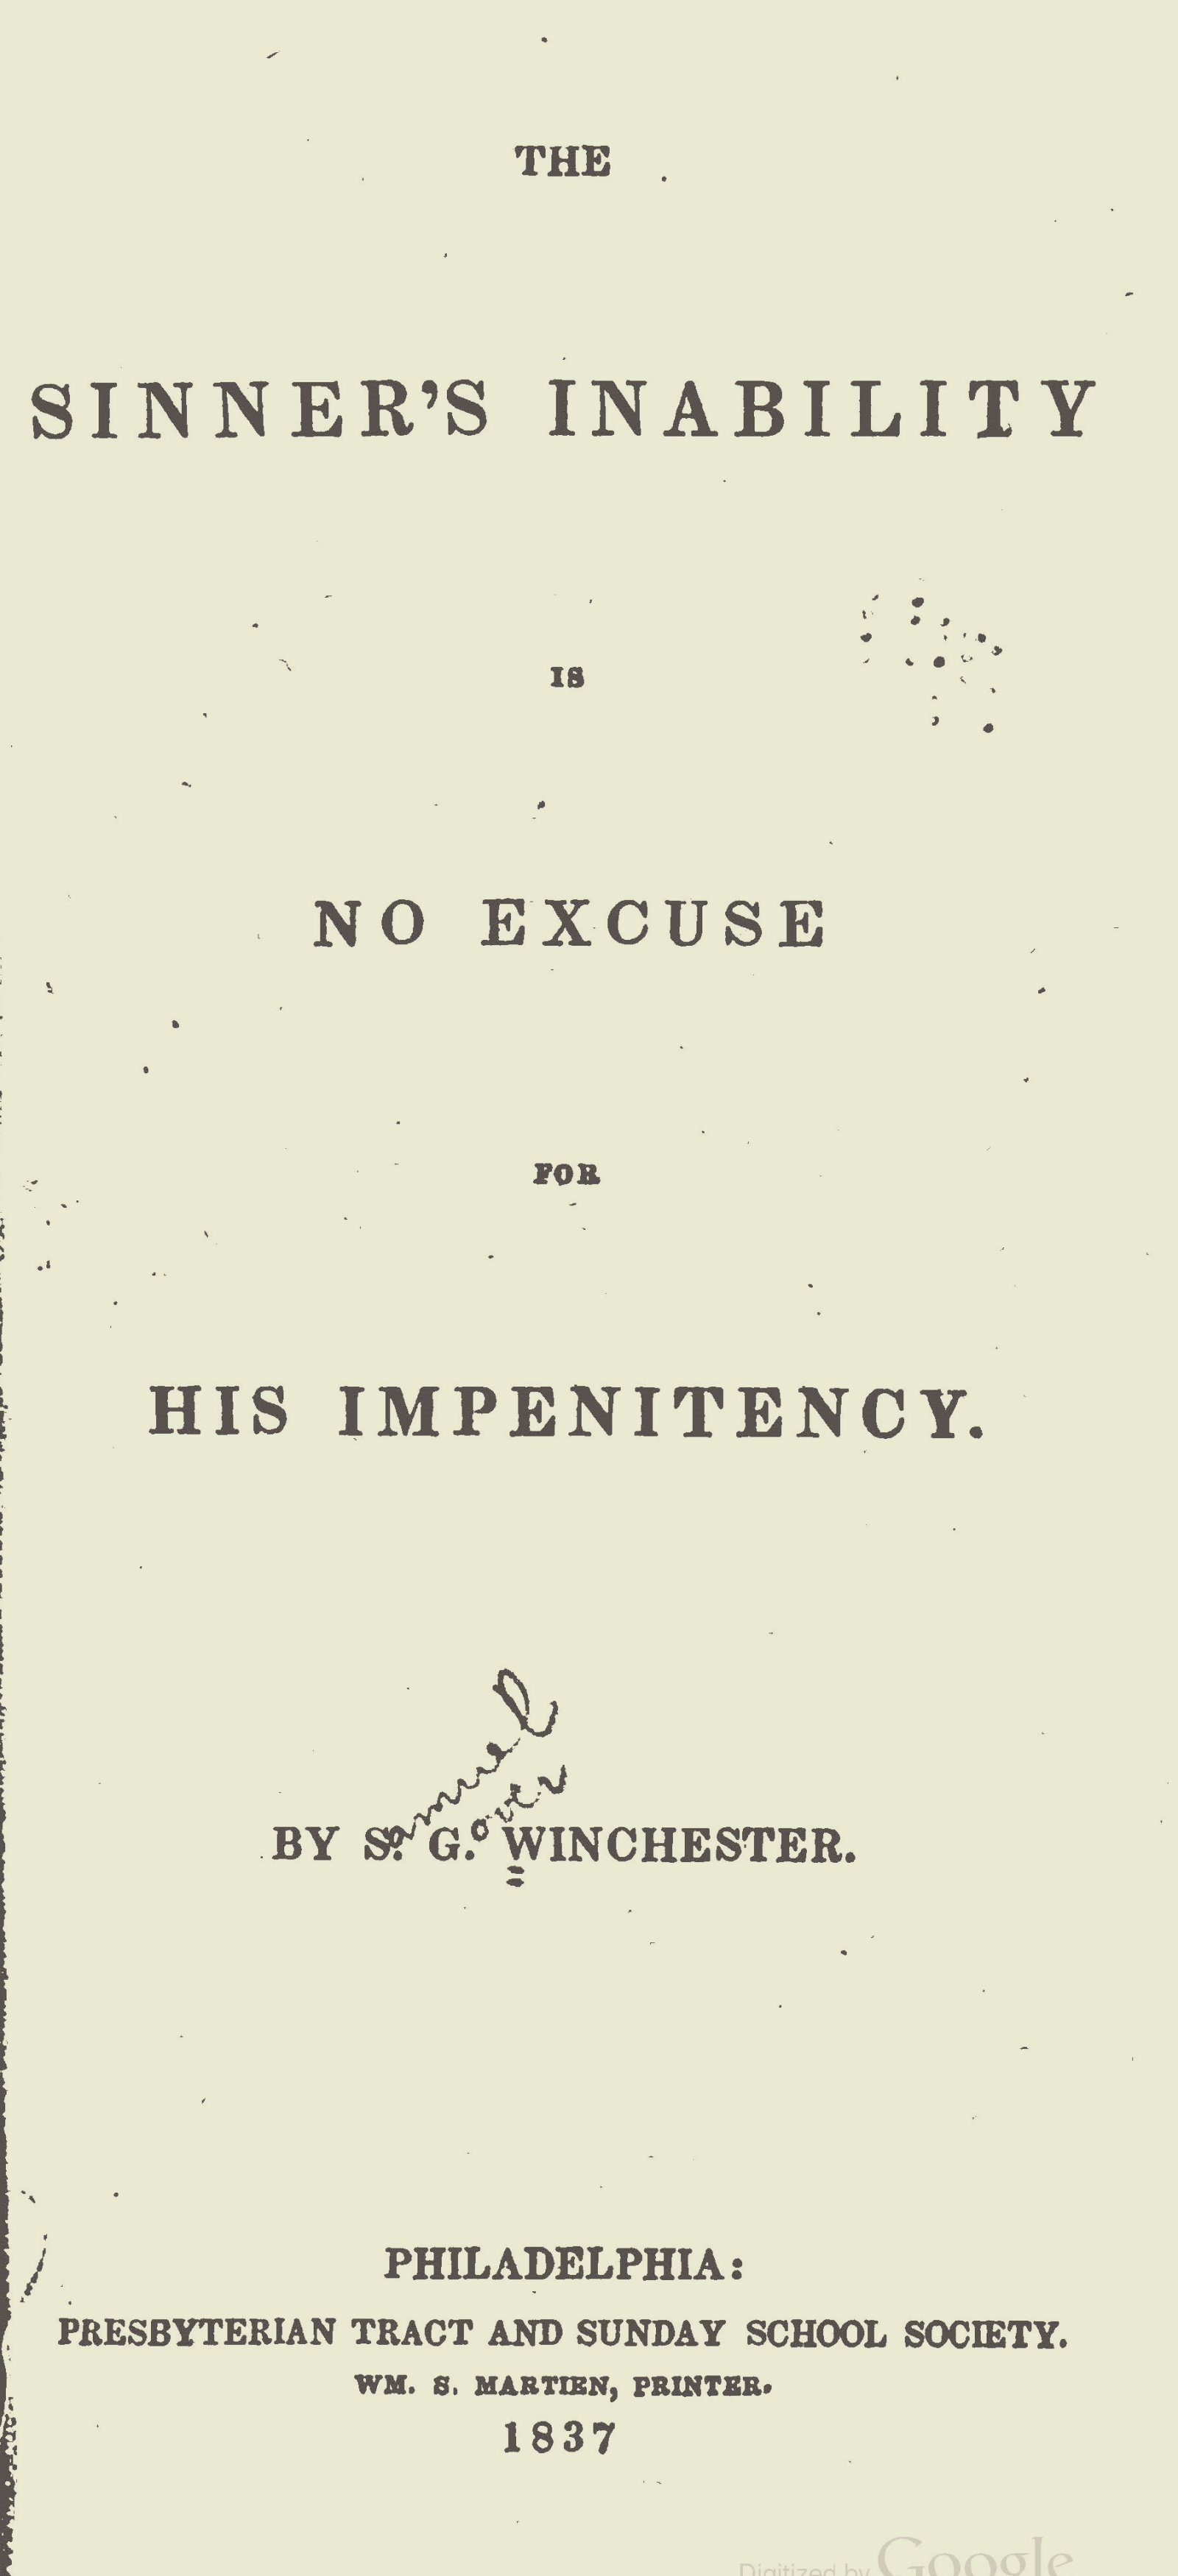 Winchester, Samuel Gover, The Sinner's Inability is No Excuse Title Page.jpg